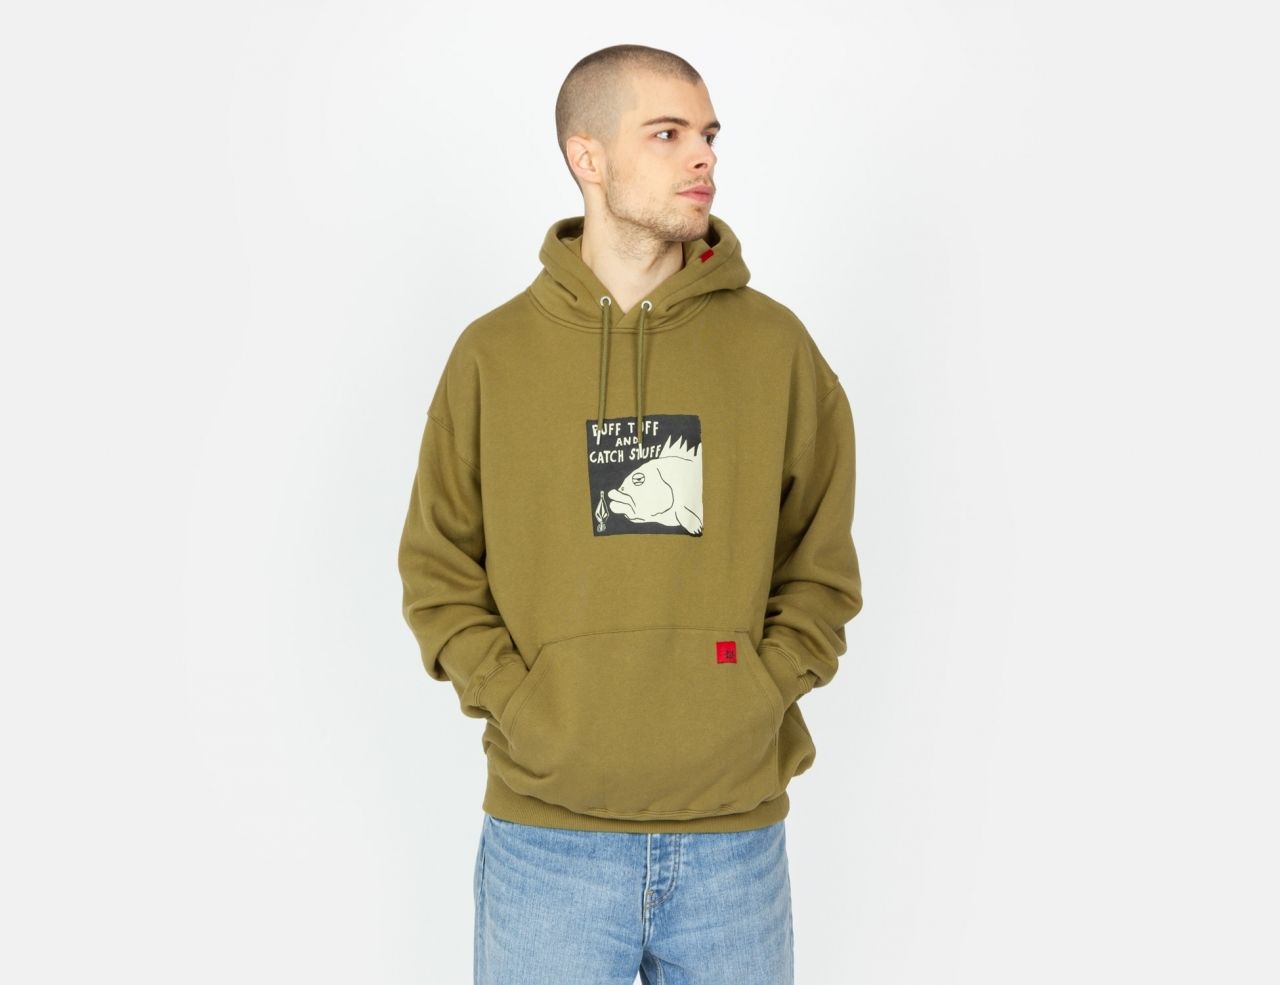 Volcom Loose Trucks P/O Hoodie - Old Mill